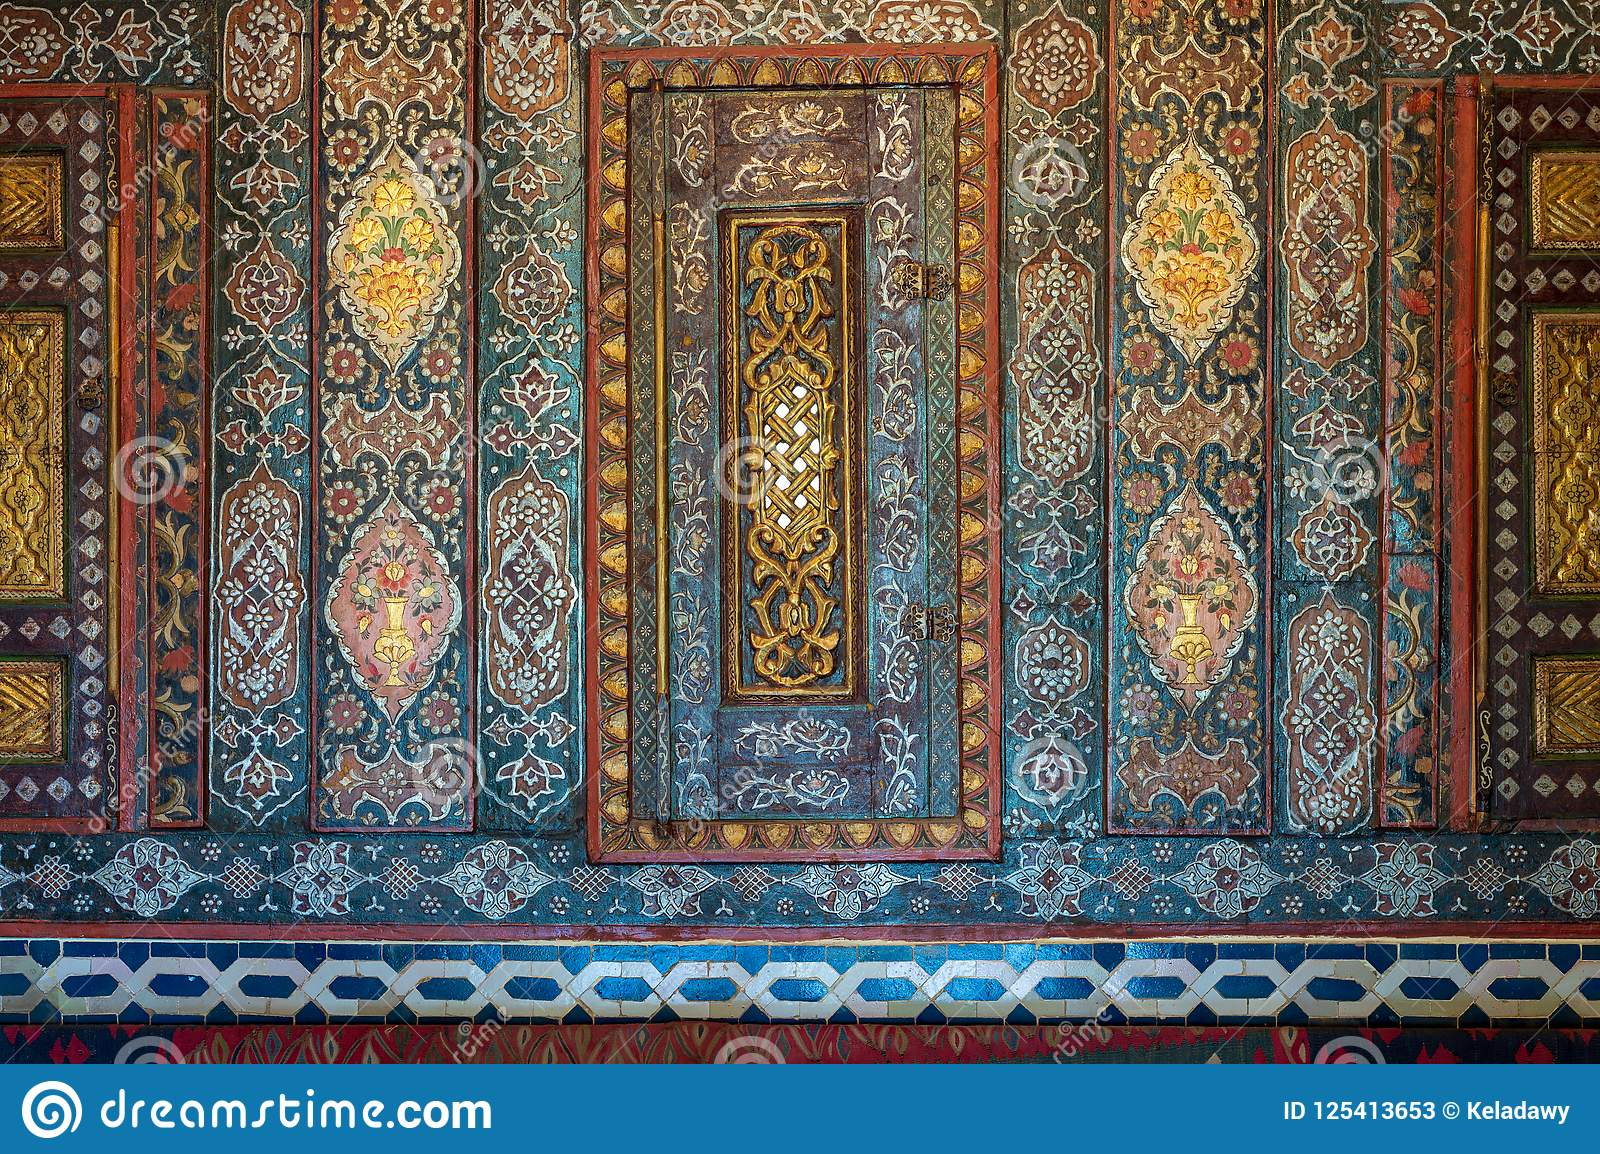 Floral ornaments of wooden embedded cupboards painted with colored geometrical patterns, Cairo, Egypt